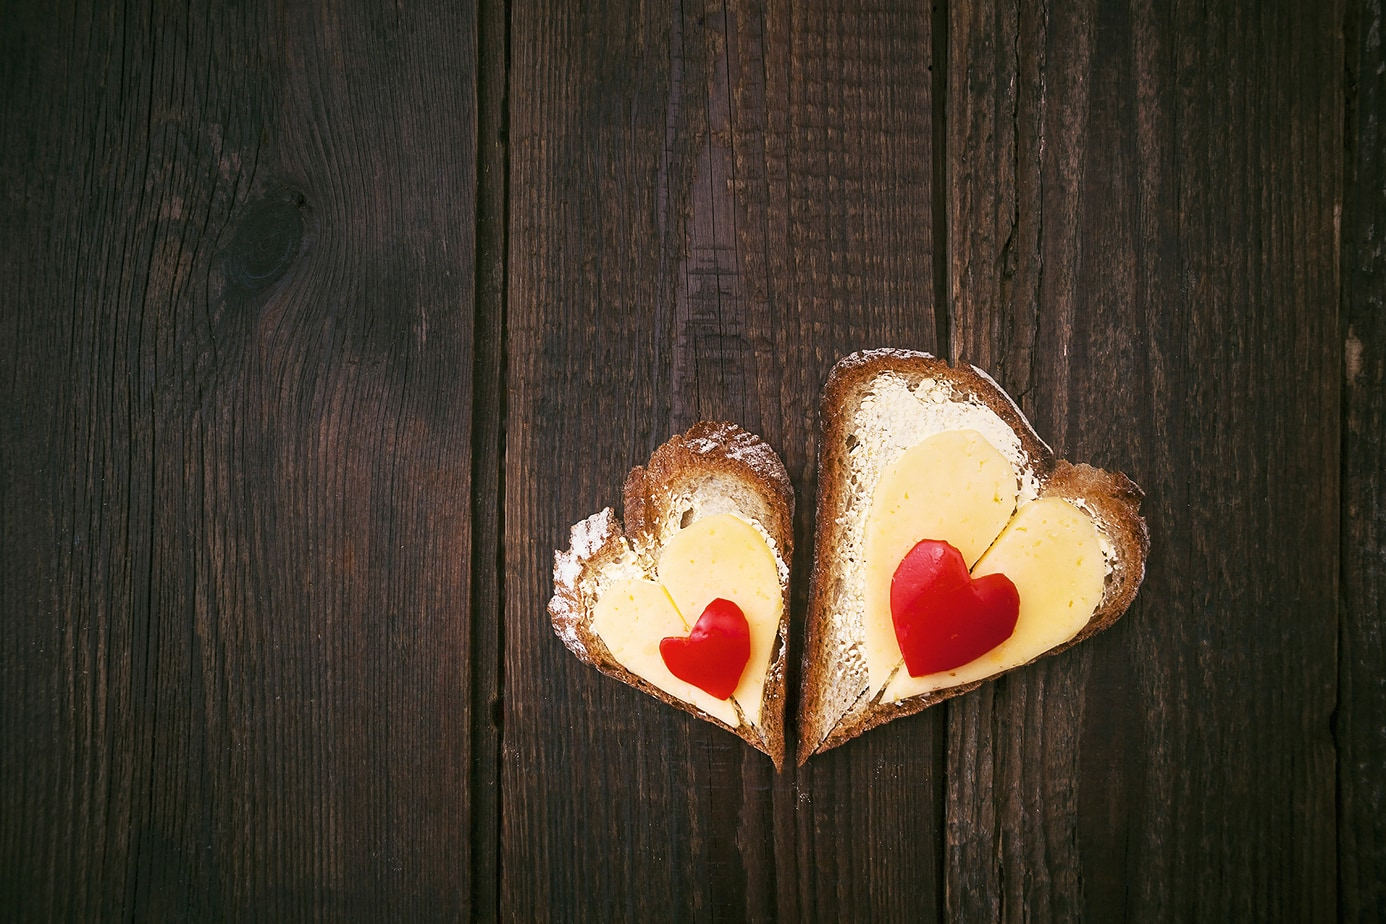 The Color Club - Cheese hearts iStock 000023383822 Large